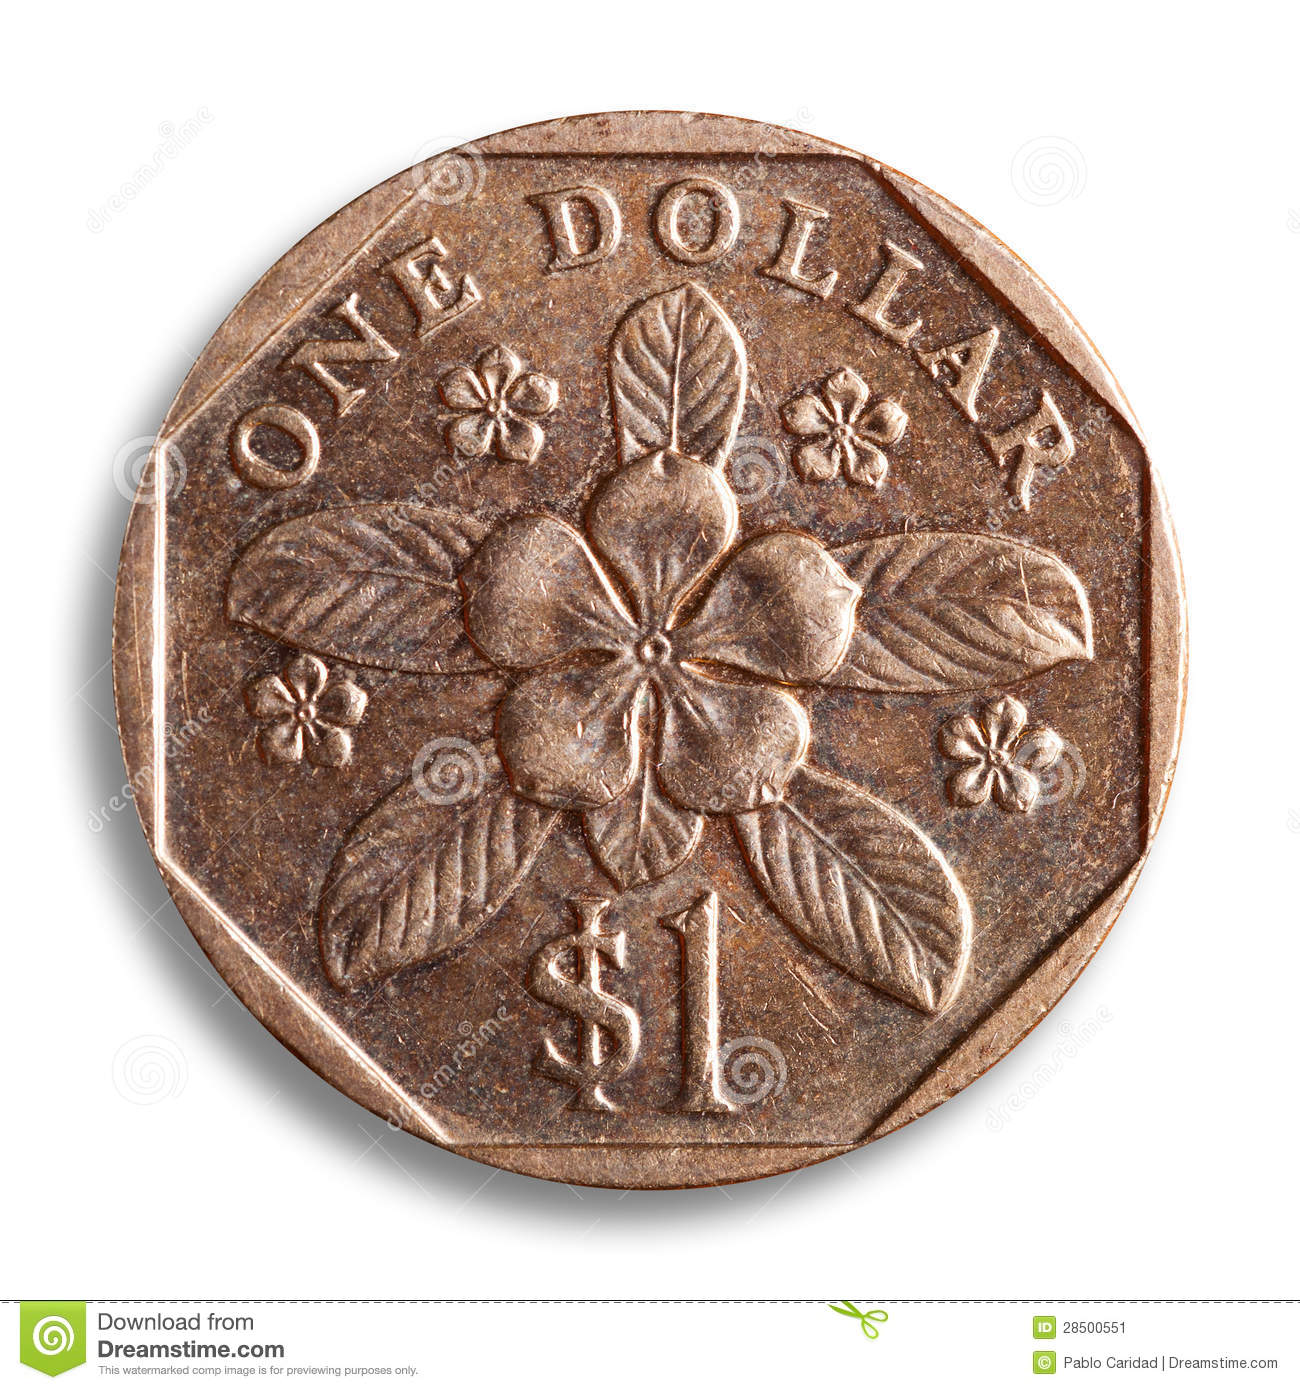 Singapore dollar, clipping path.